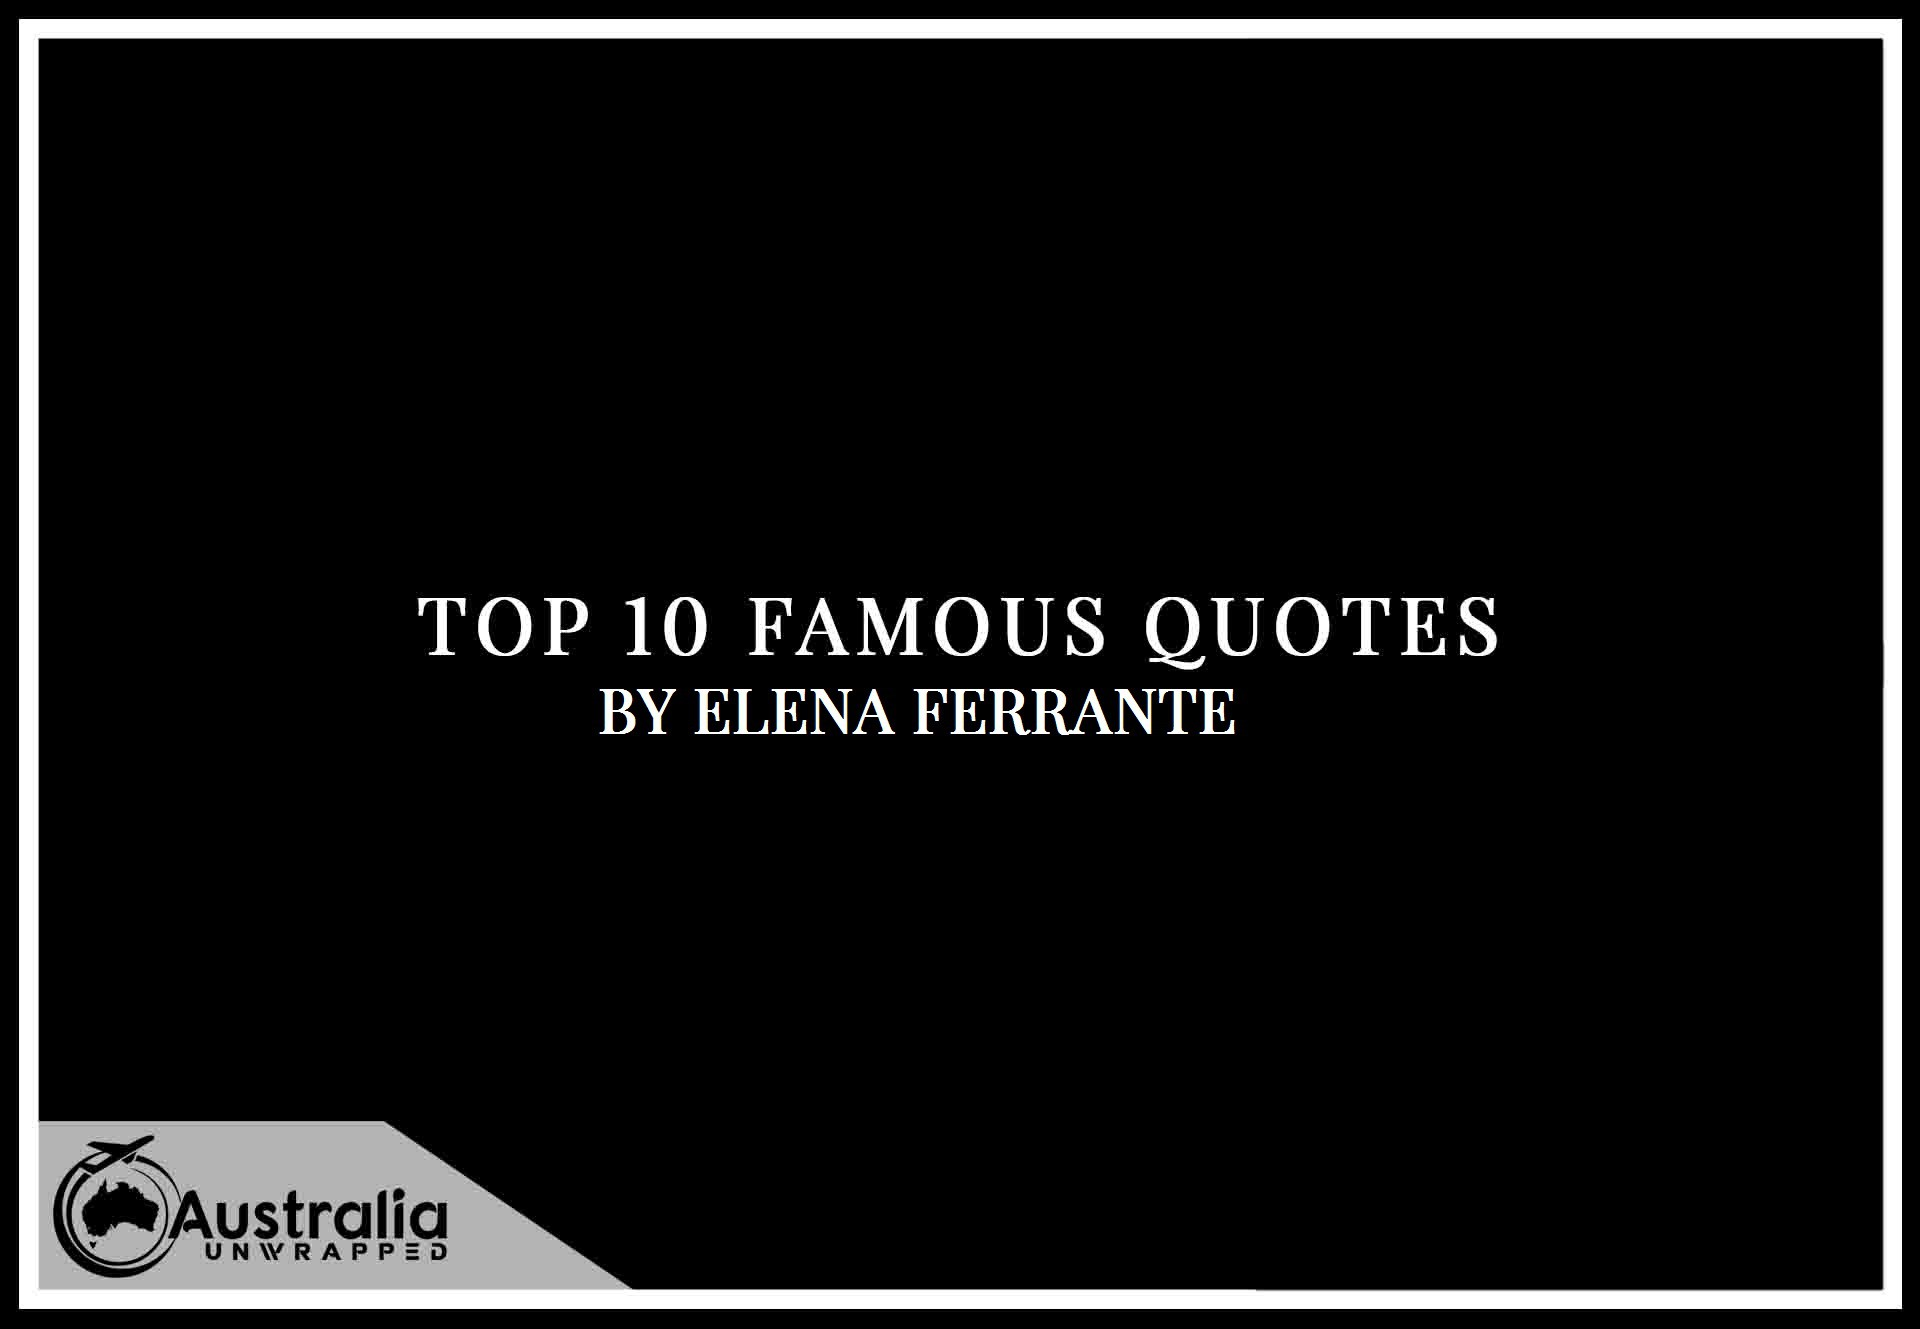 Elena Ferrante's Top 10 Popular and Famous Quotes